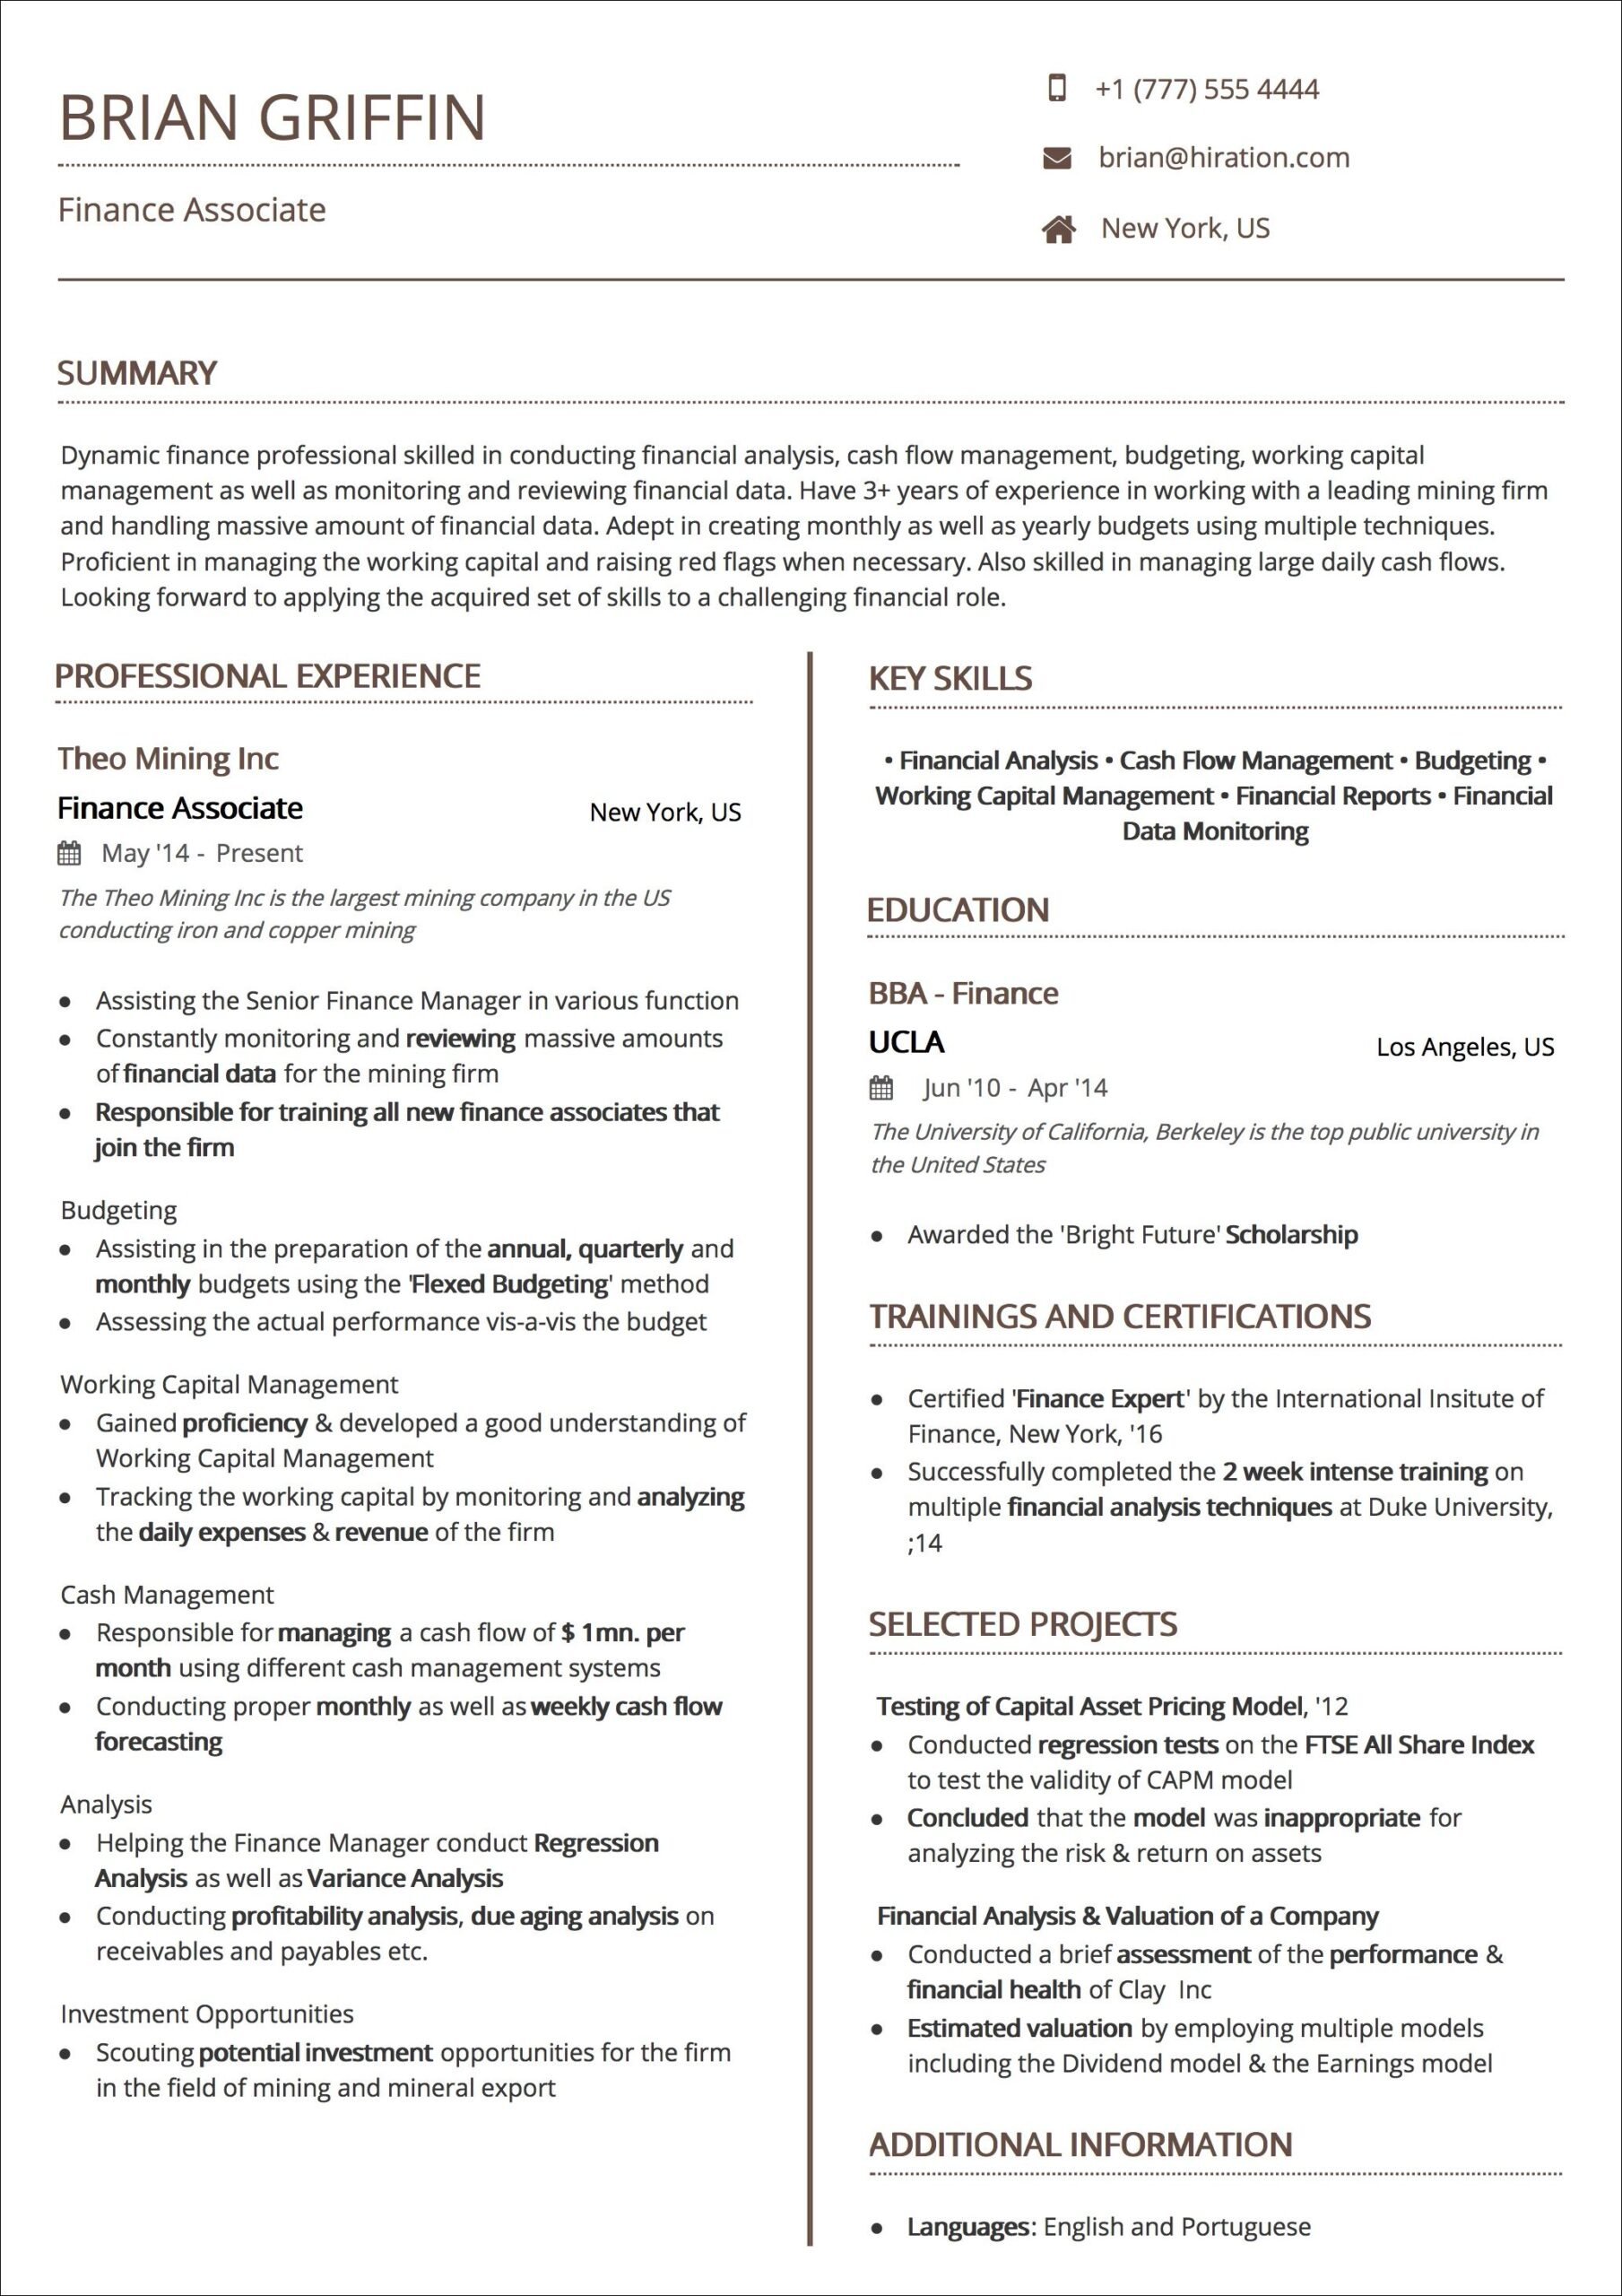 resume templates the guide to choosing best template ats friendly free uniform film Resume Ats Friendly Resume Template Free 2020